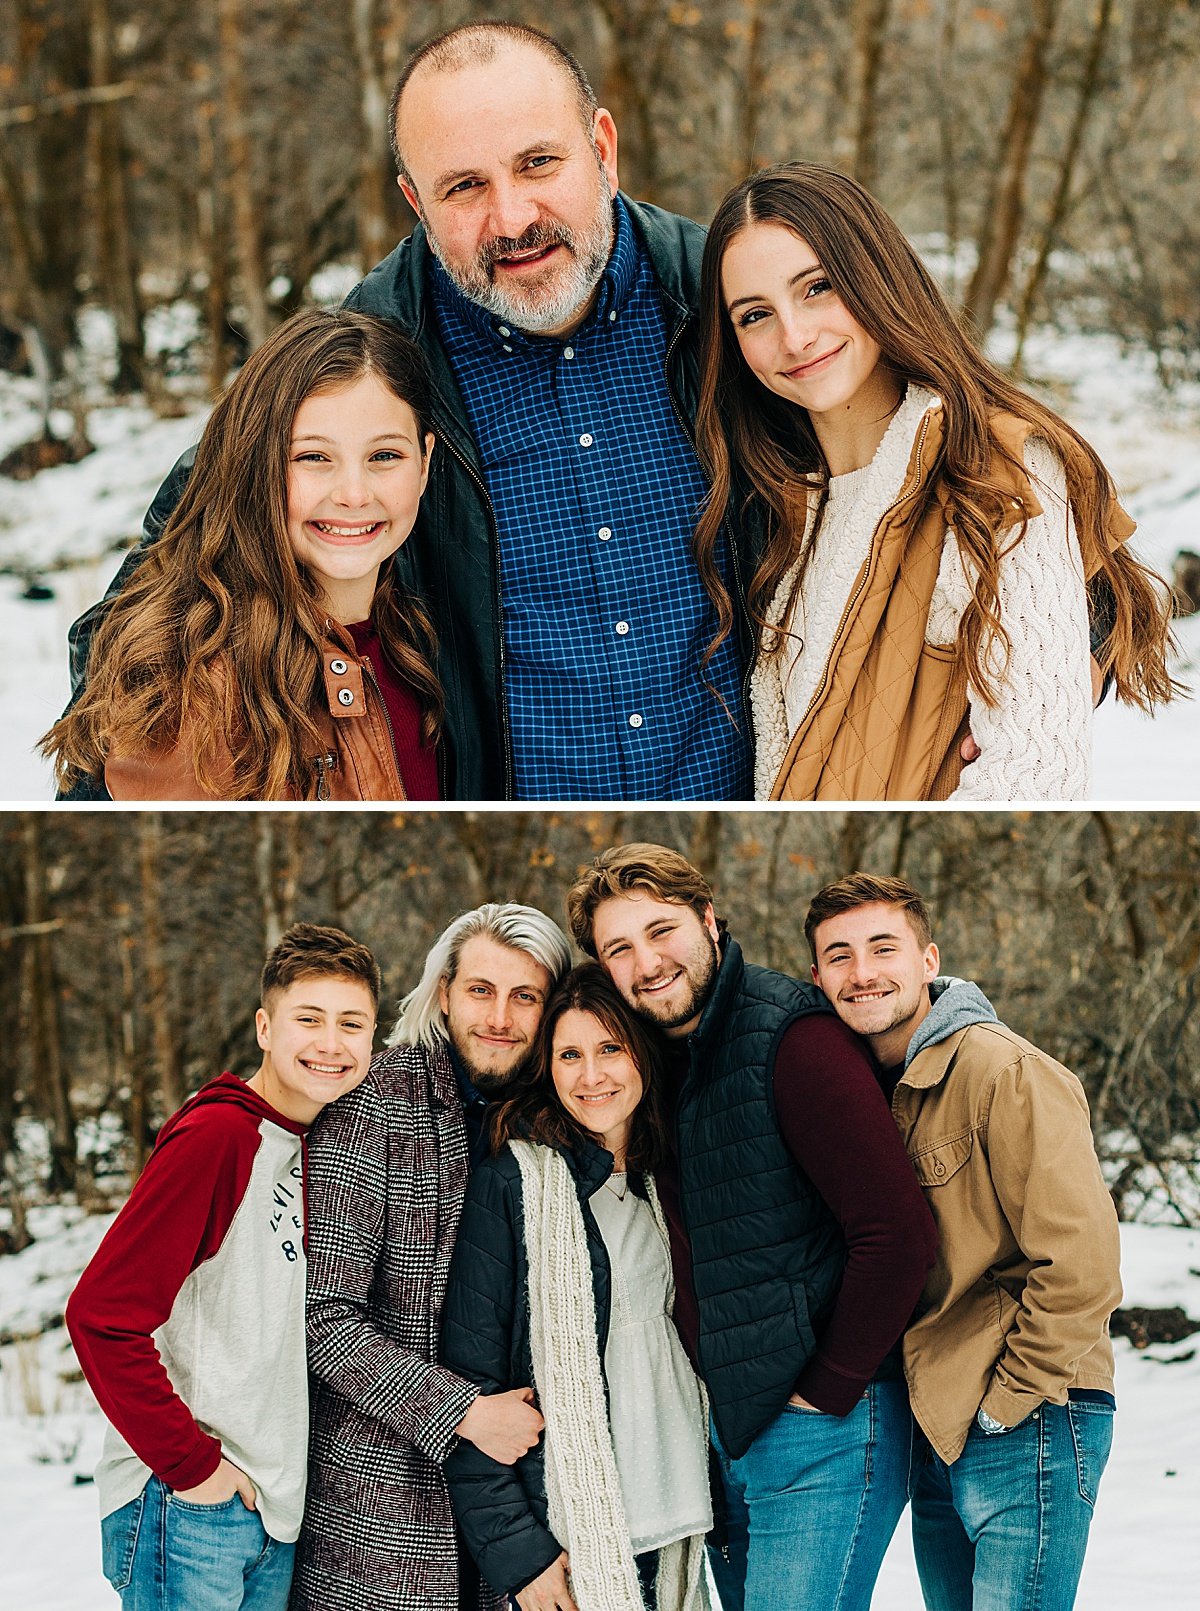 Dalton | Family Pictures in the Snow